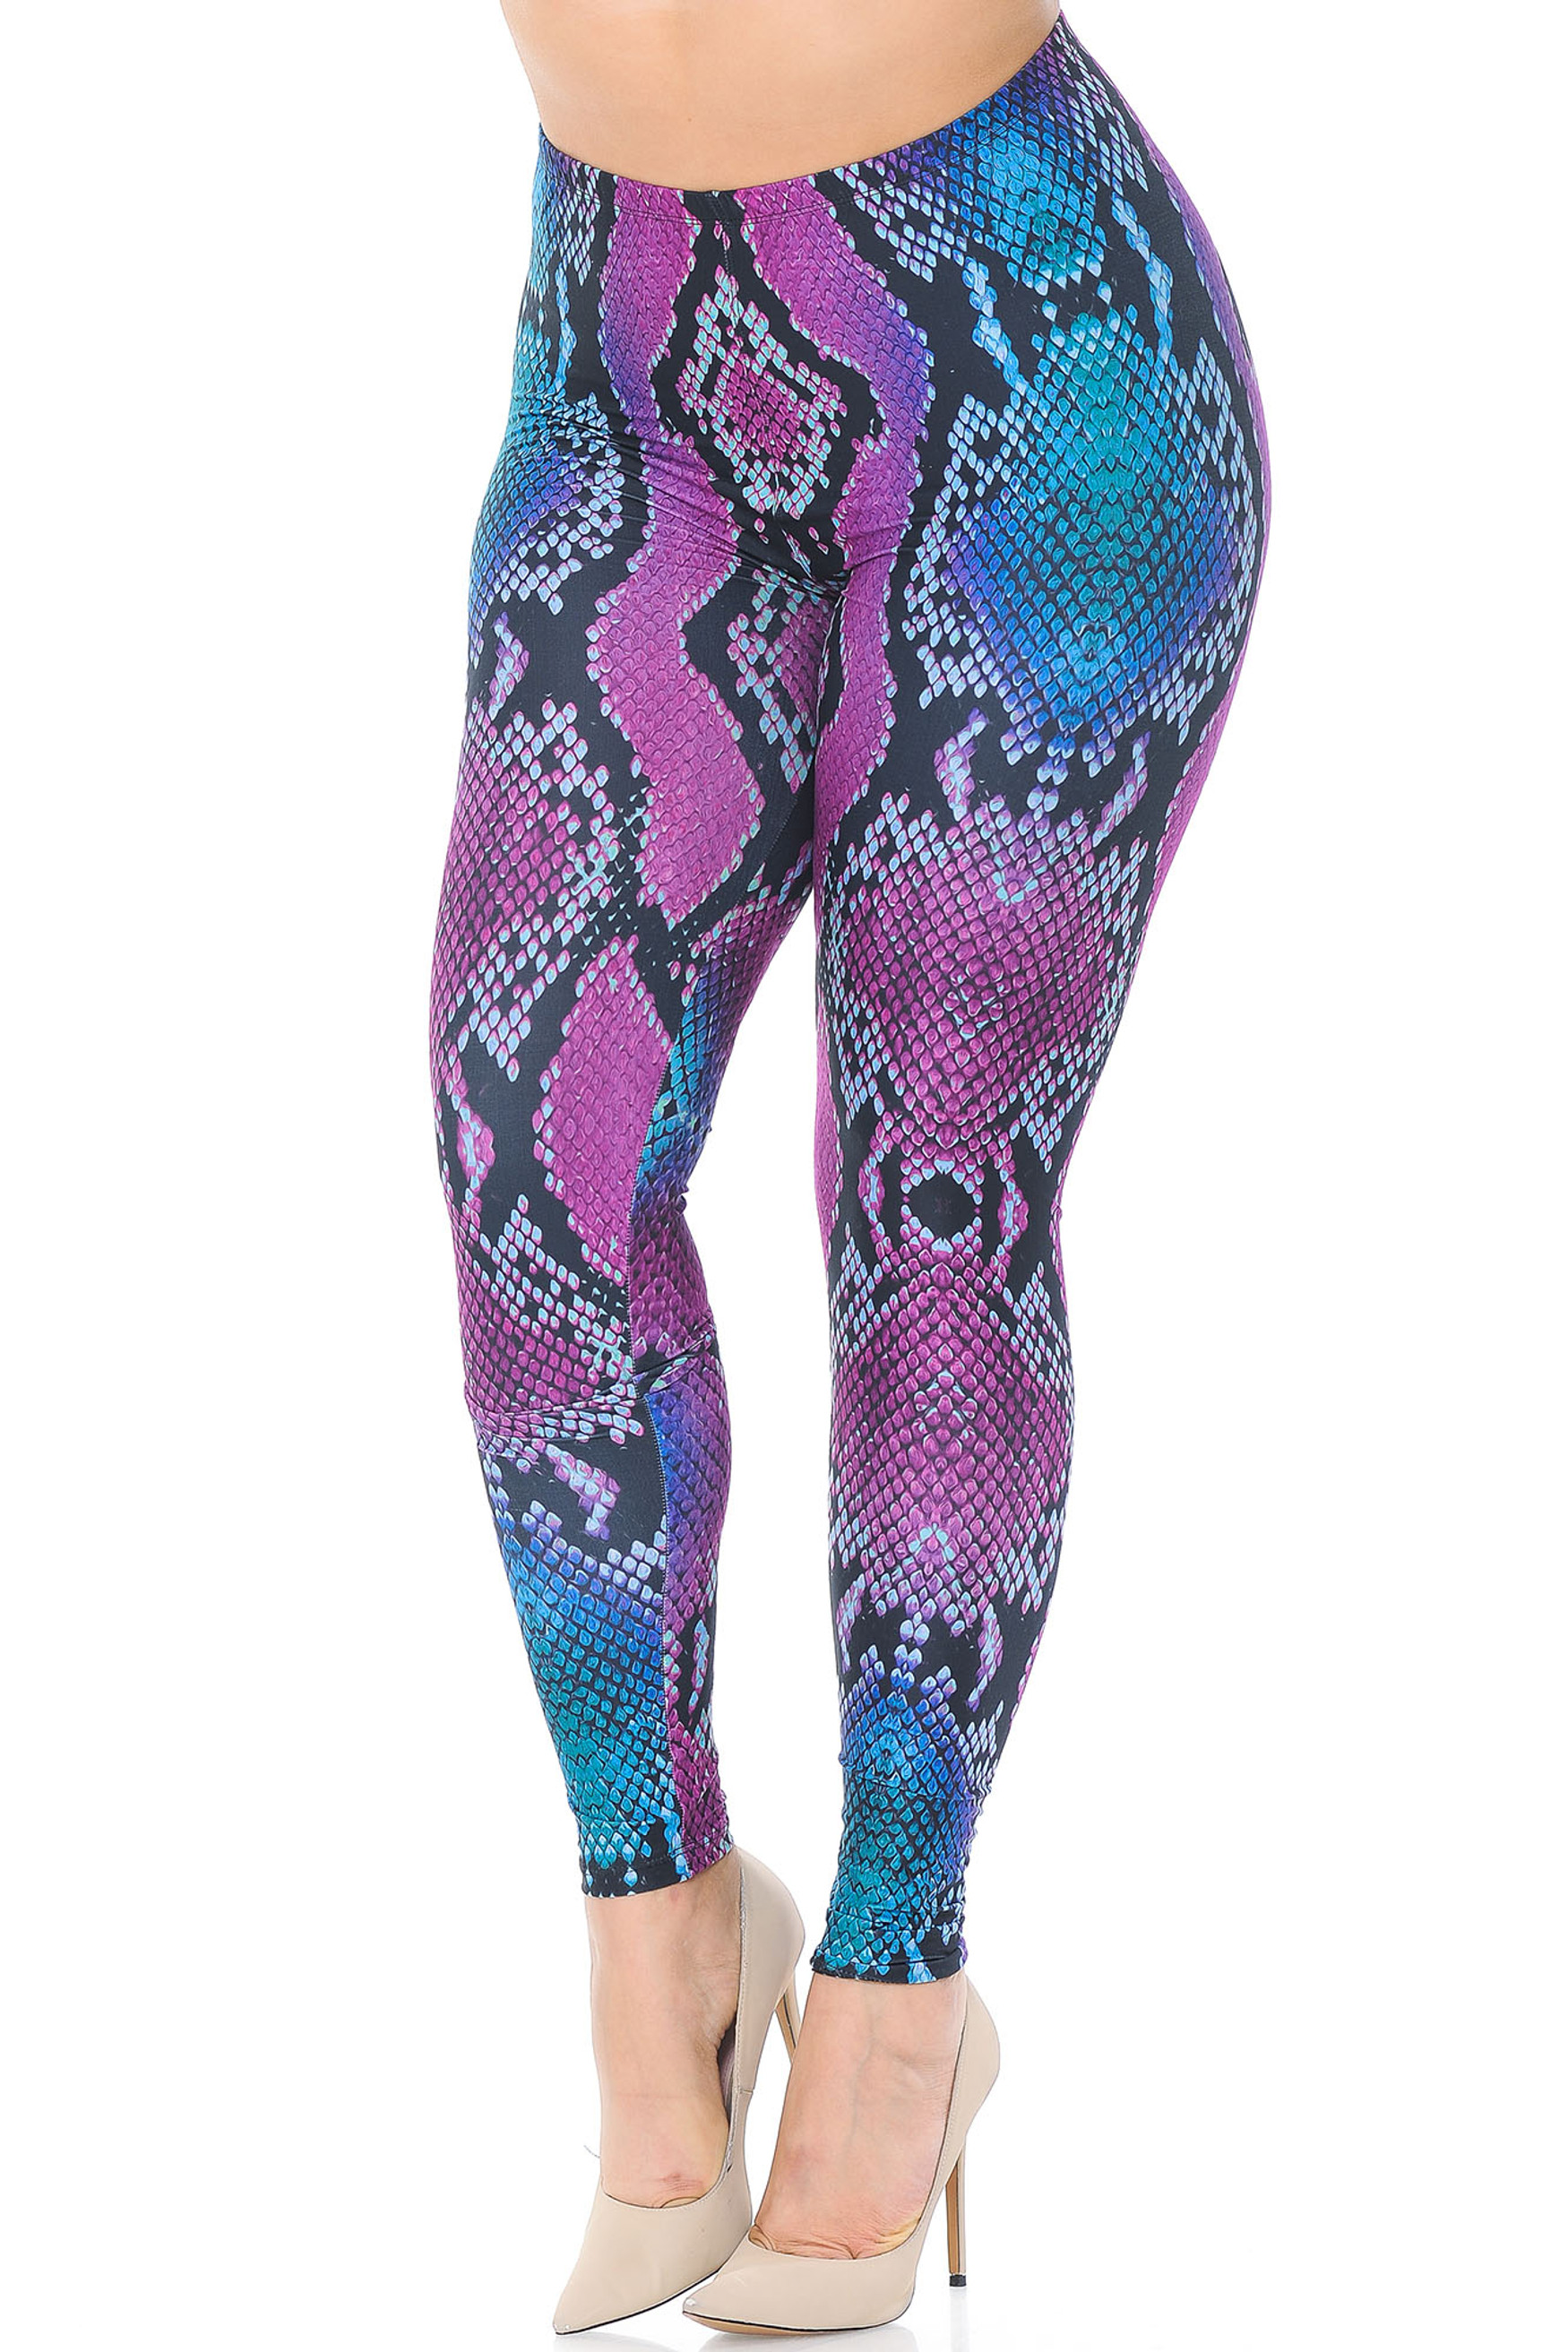 Creamy Soft Pink and Blue Snakeskin Plus Size Leggings - USA Fashion™